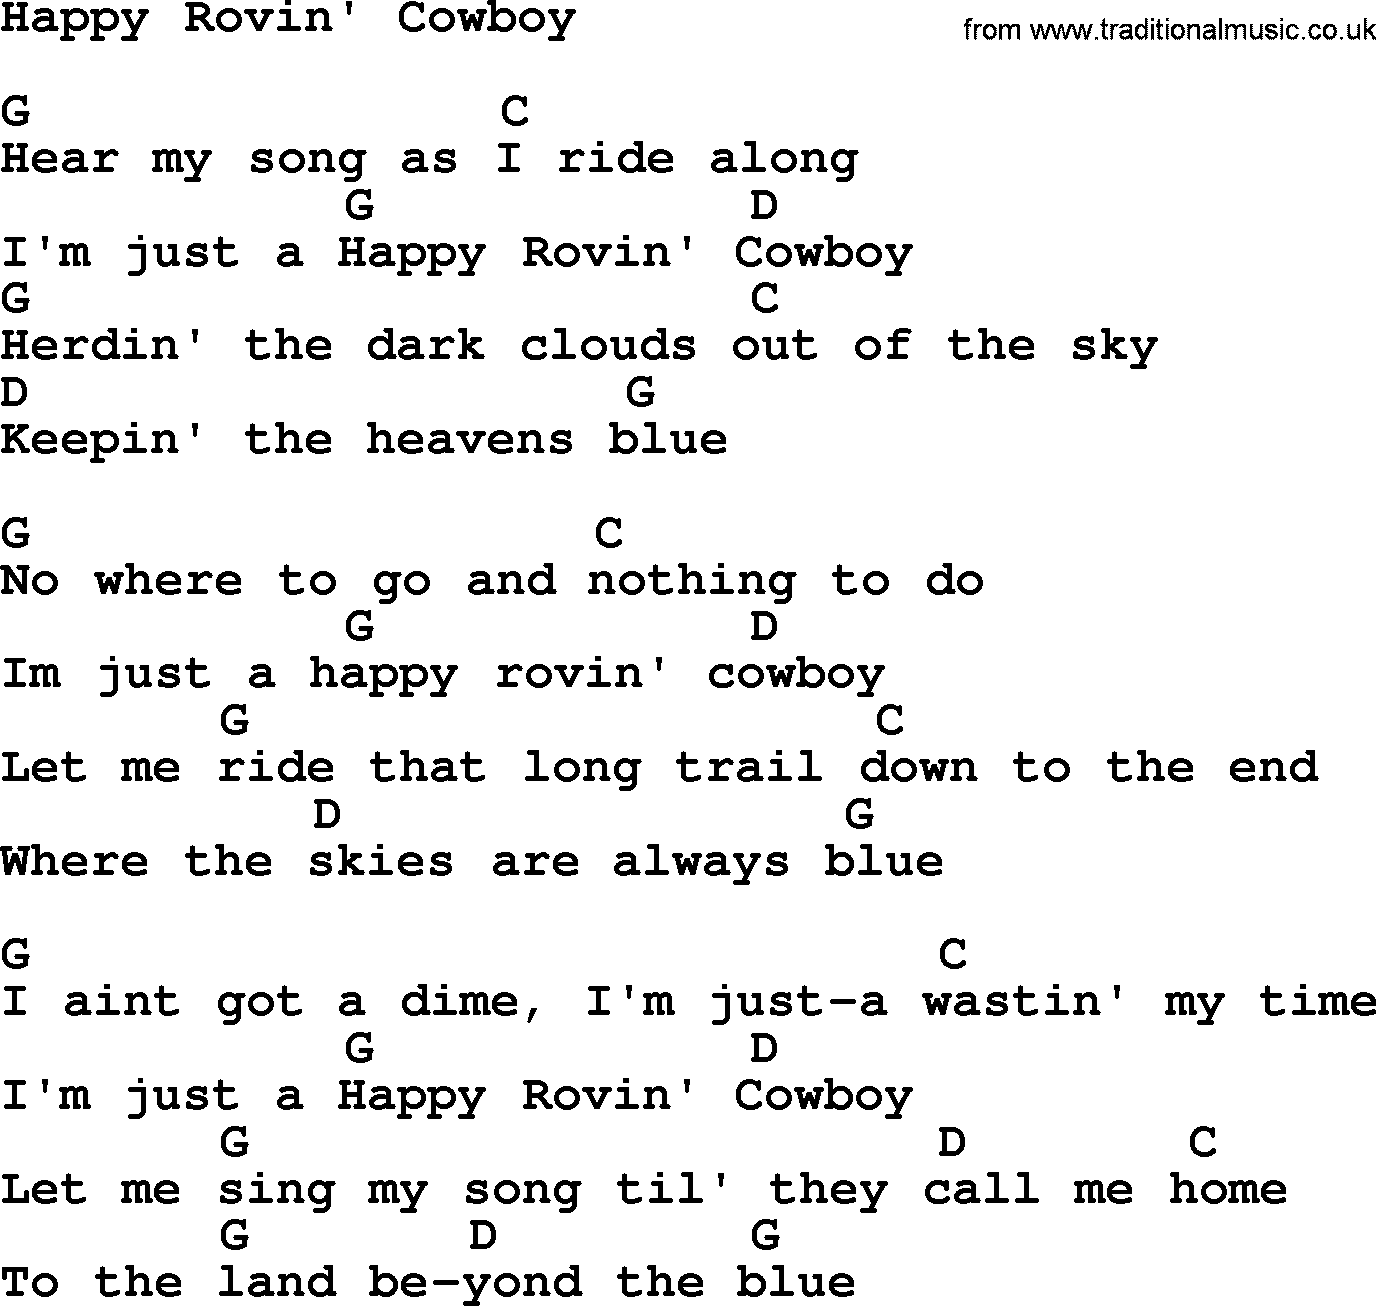 hank williams song happy rovin 39 cowboy lyrics and chords. Black Bedroom Furniture Sets. Home Design Ideas